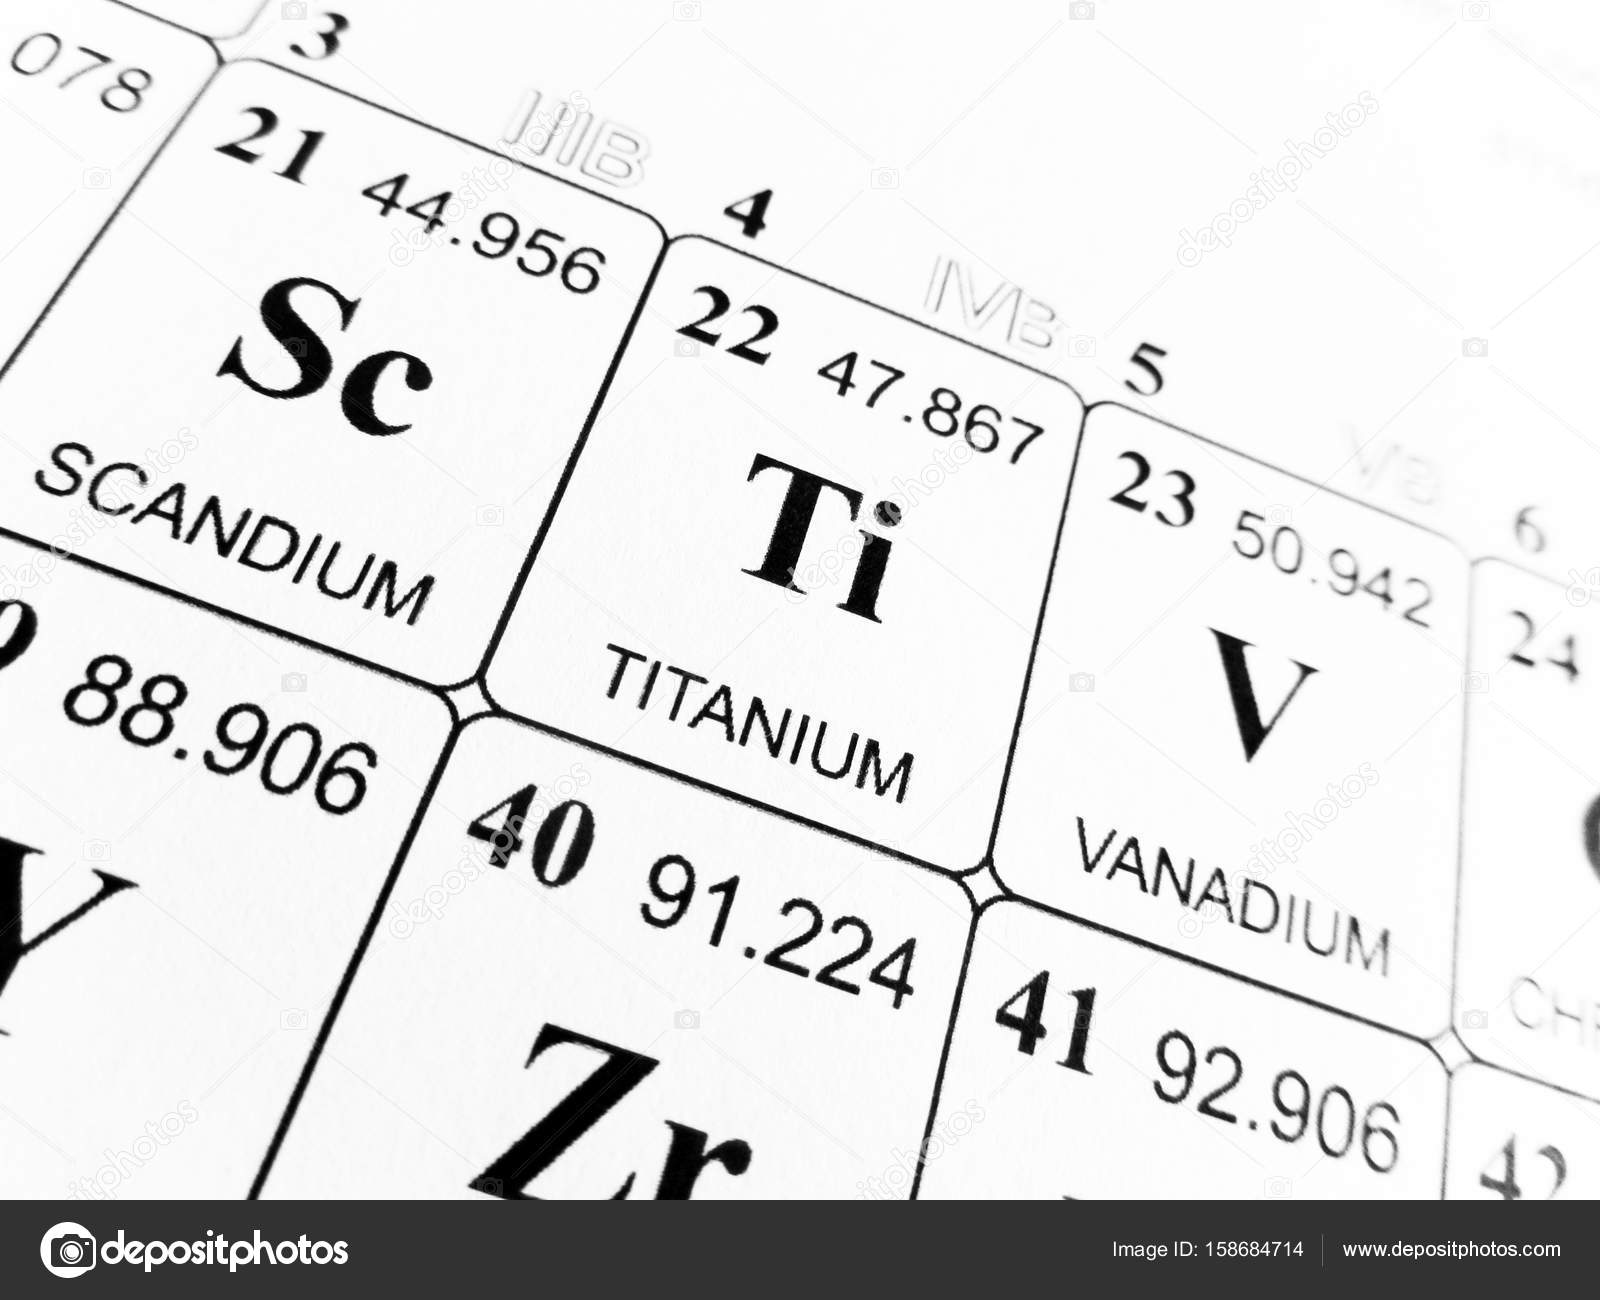 Titanium on the periodic table of the elements stock photo titanium on the periodic table of the elements stock photo urtaz Gallery